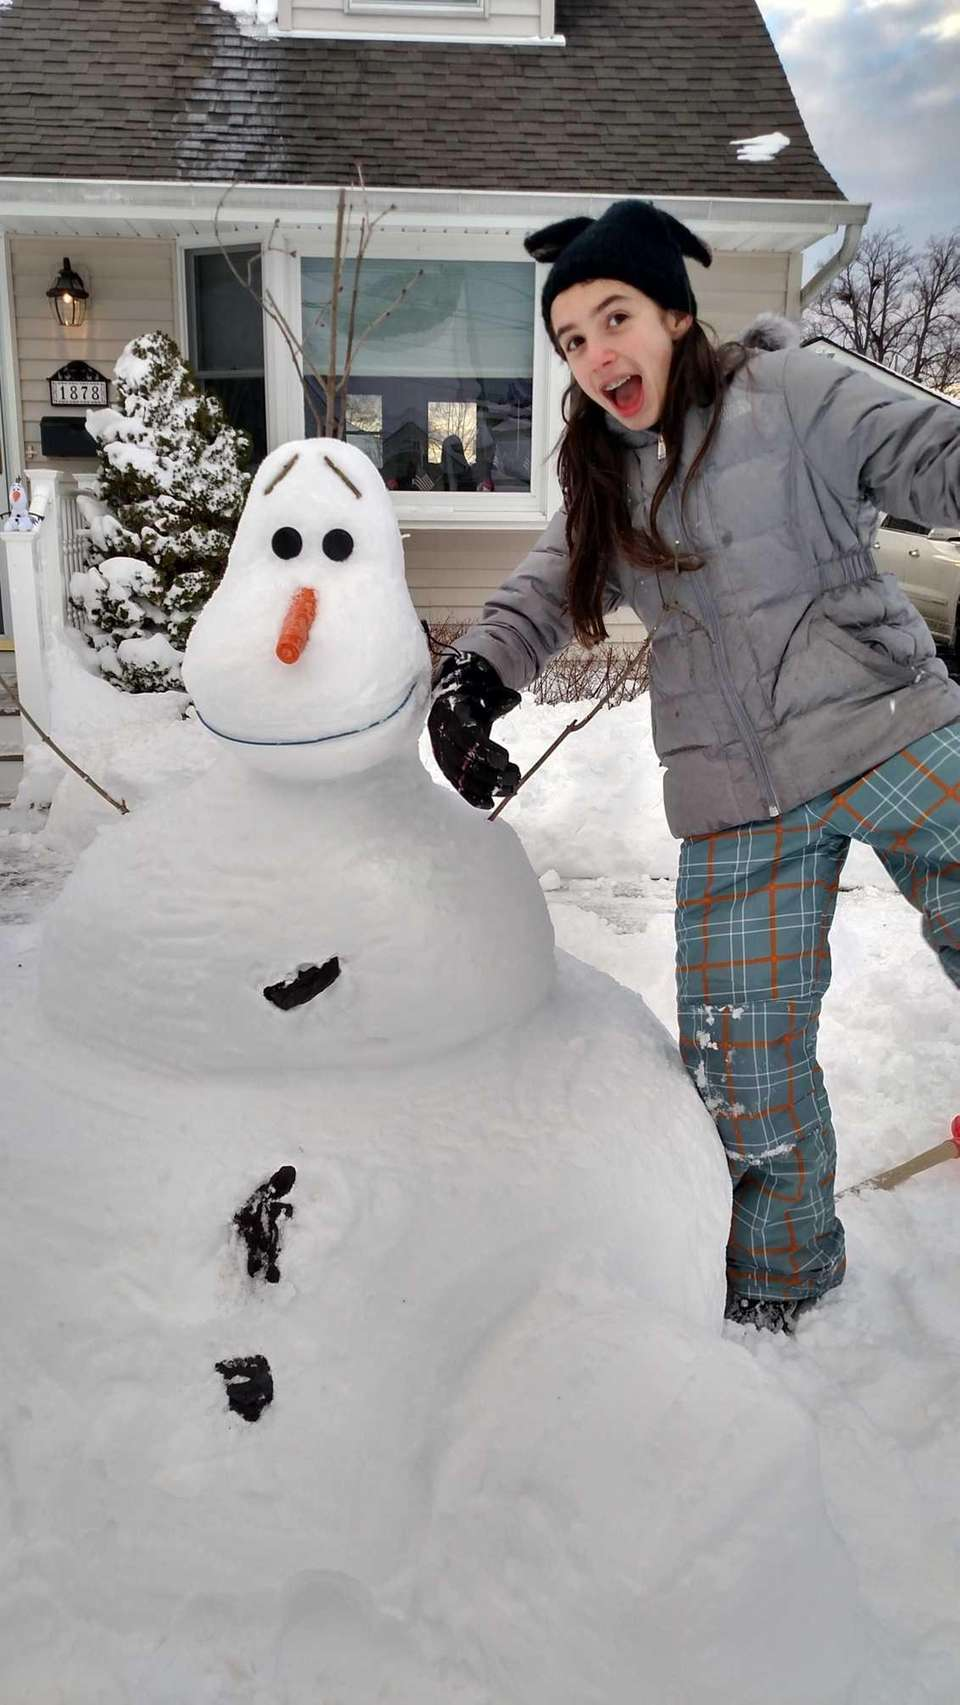 Abby Maiello with her snowman in North Bellmore.